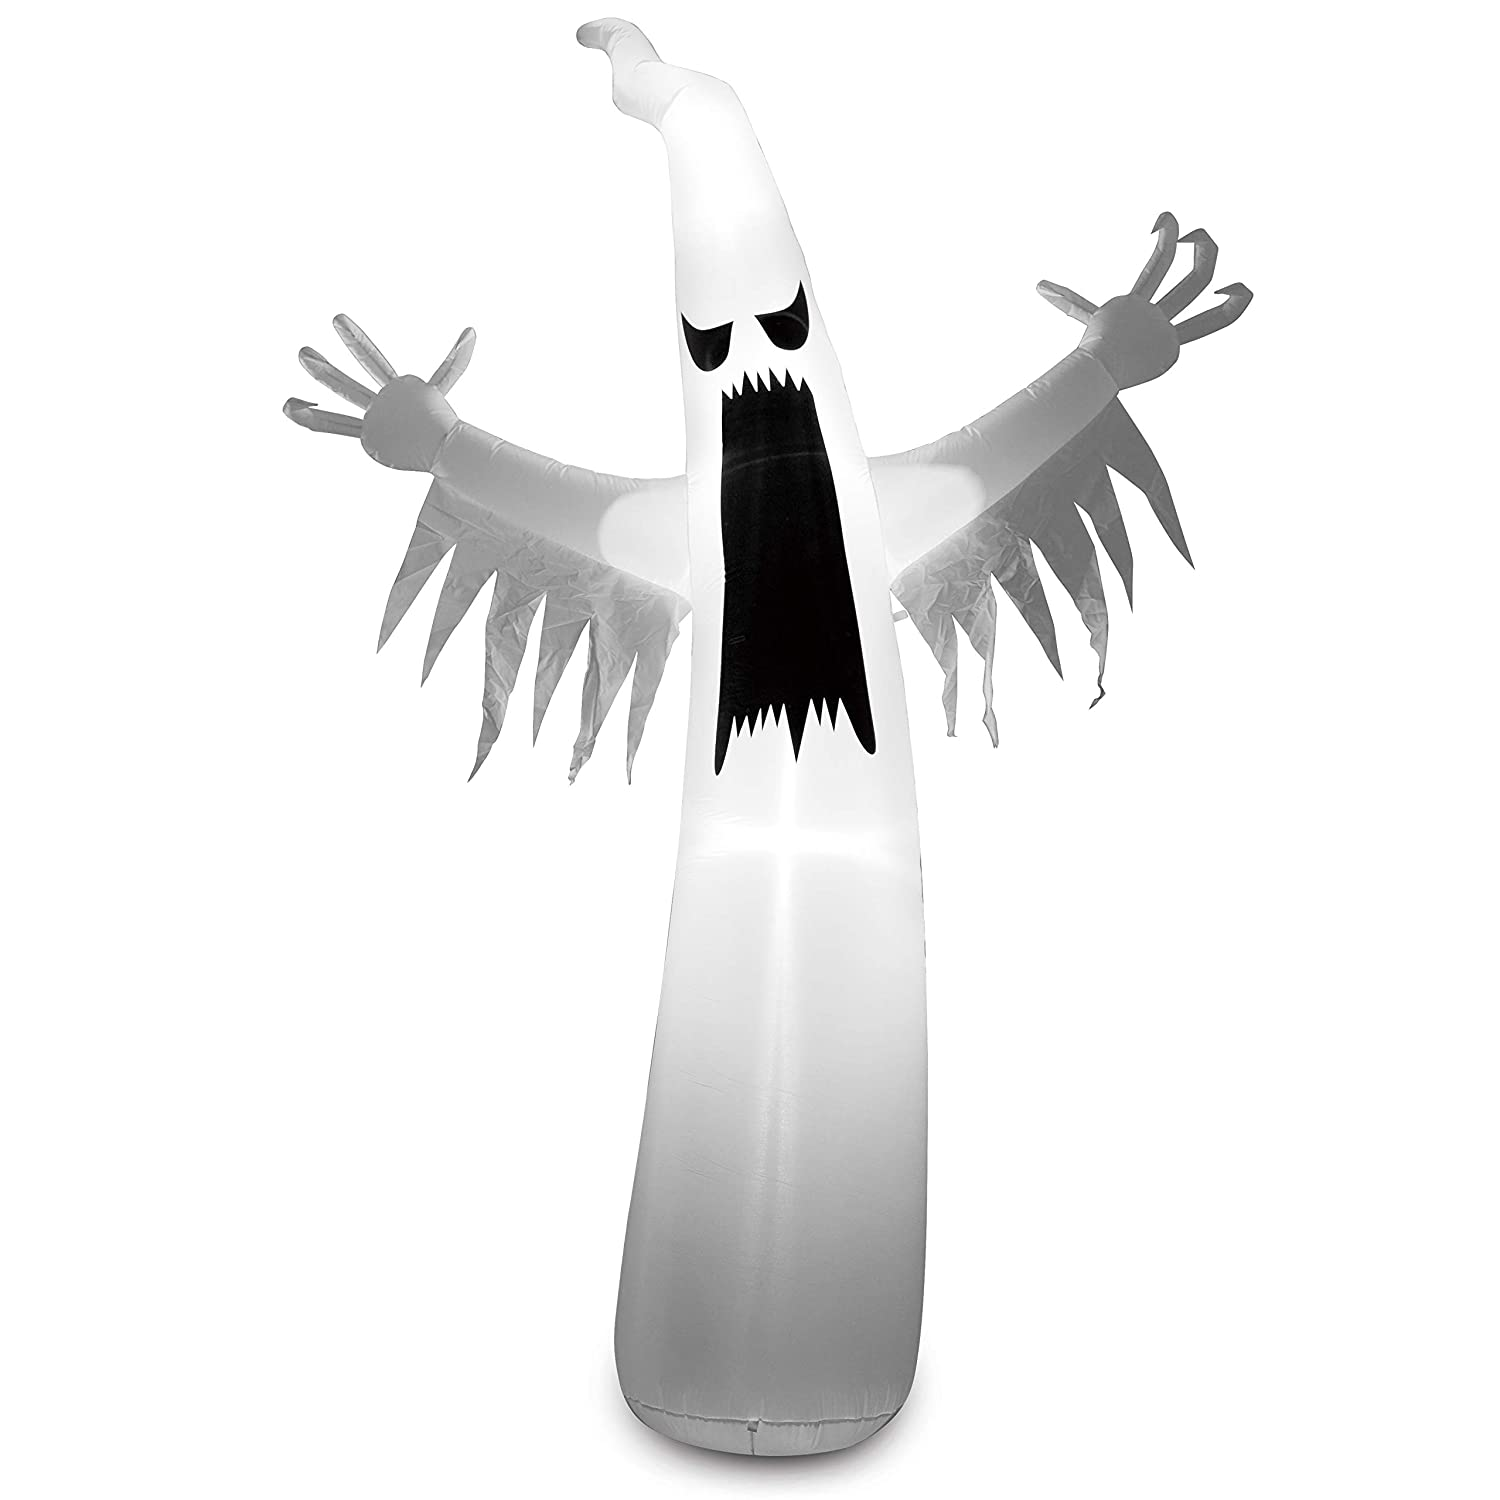 Joiedomi 12 Foot Tall Halloween Inflatable Blow Up Towering Spooky